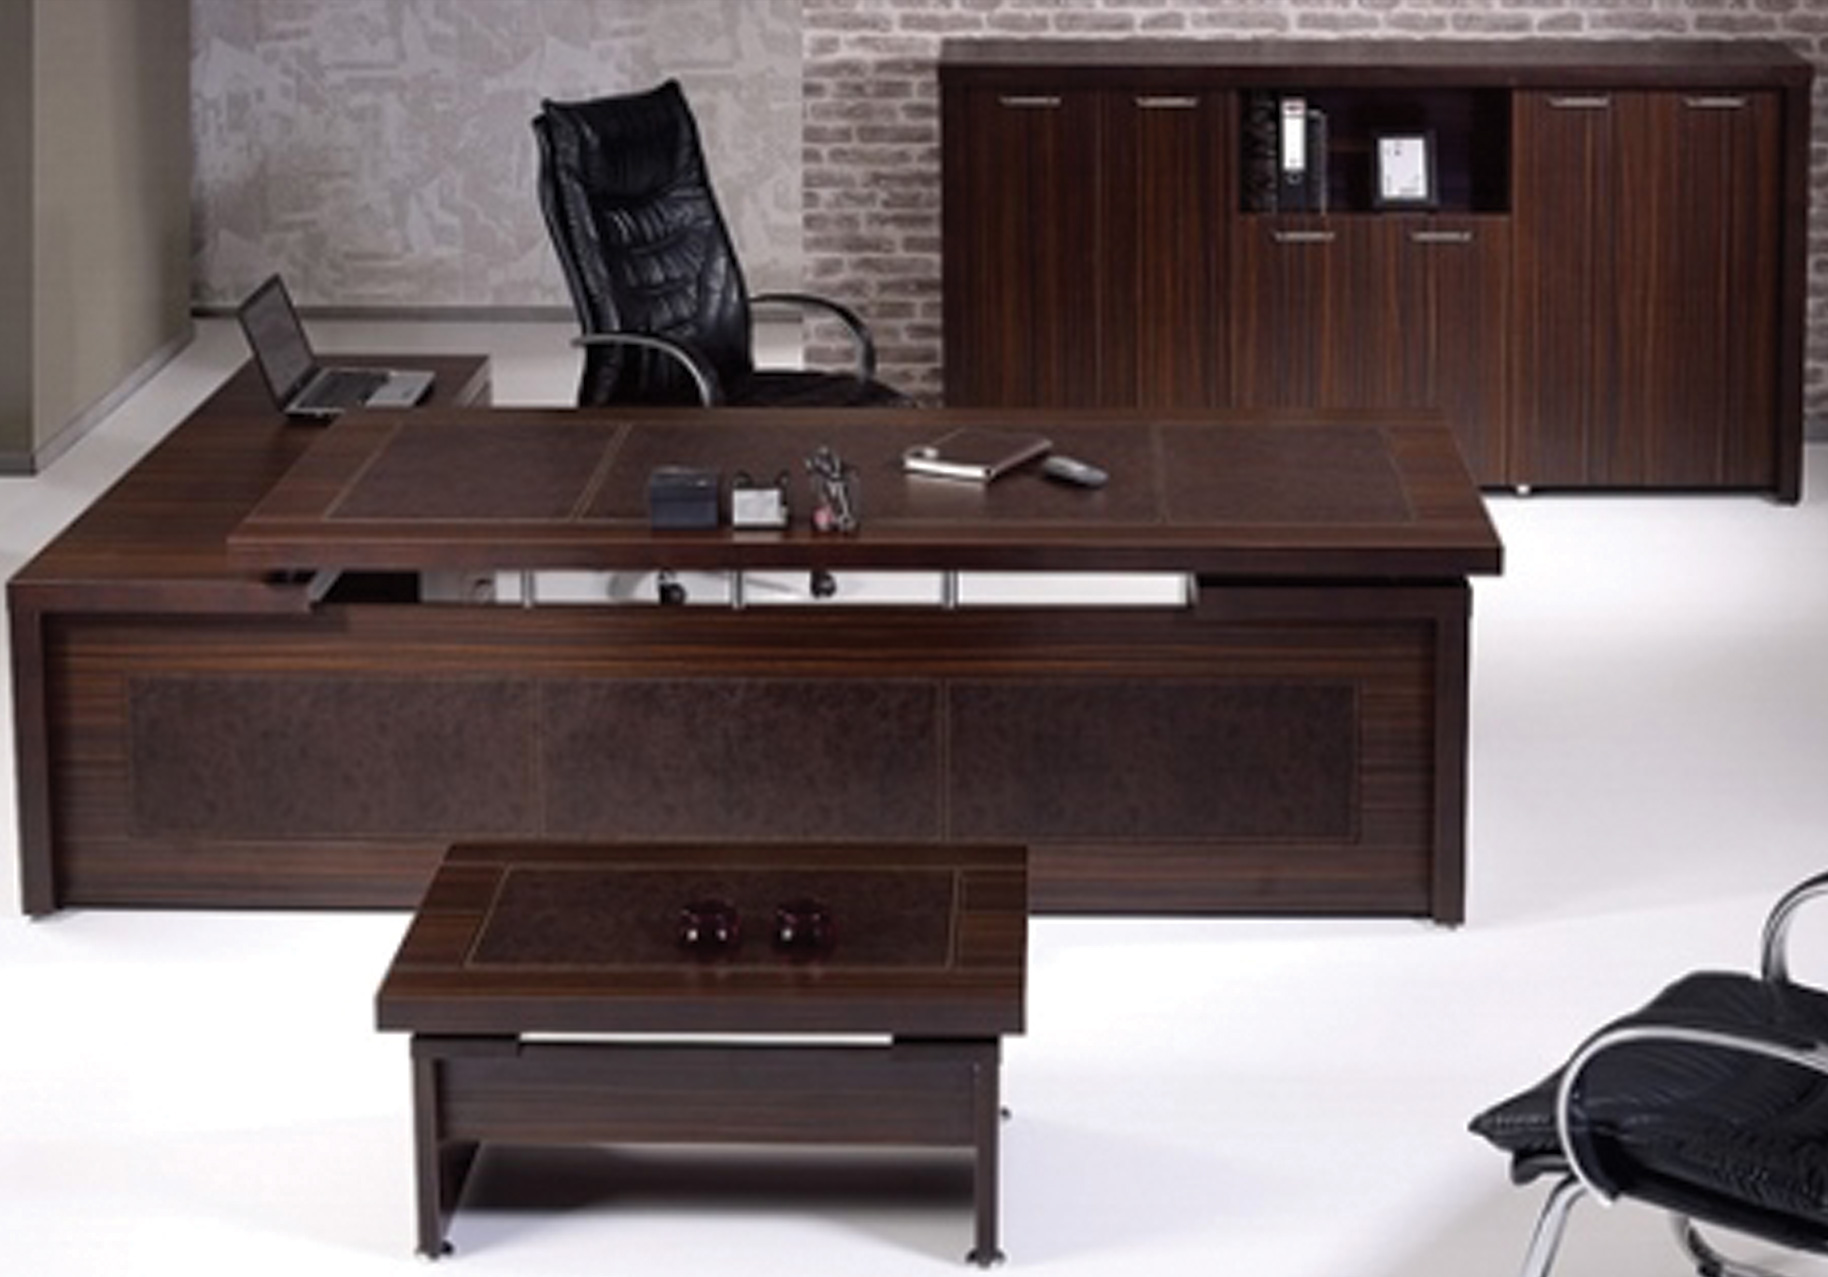 Modern Desk Set +CABINET +TEA Table - Modern desk set 260cm with return + tea table +cabinet size 220x 44x120cm